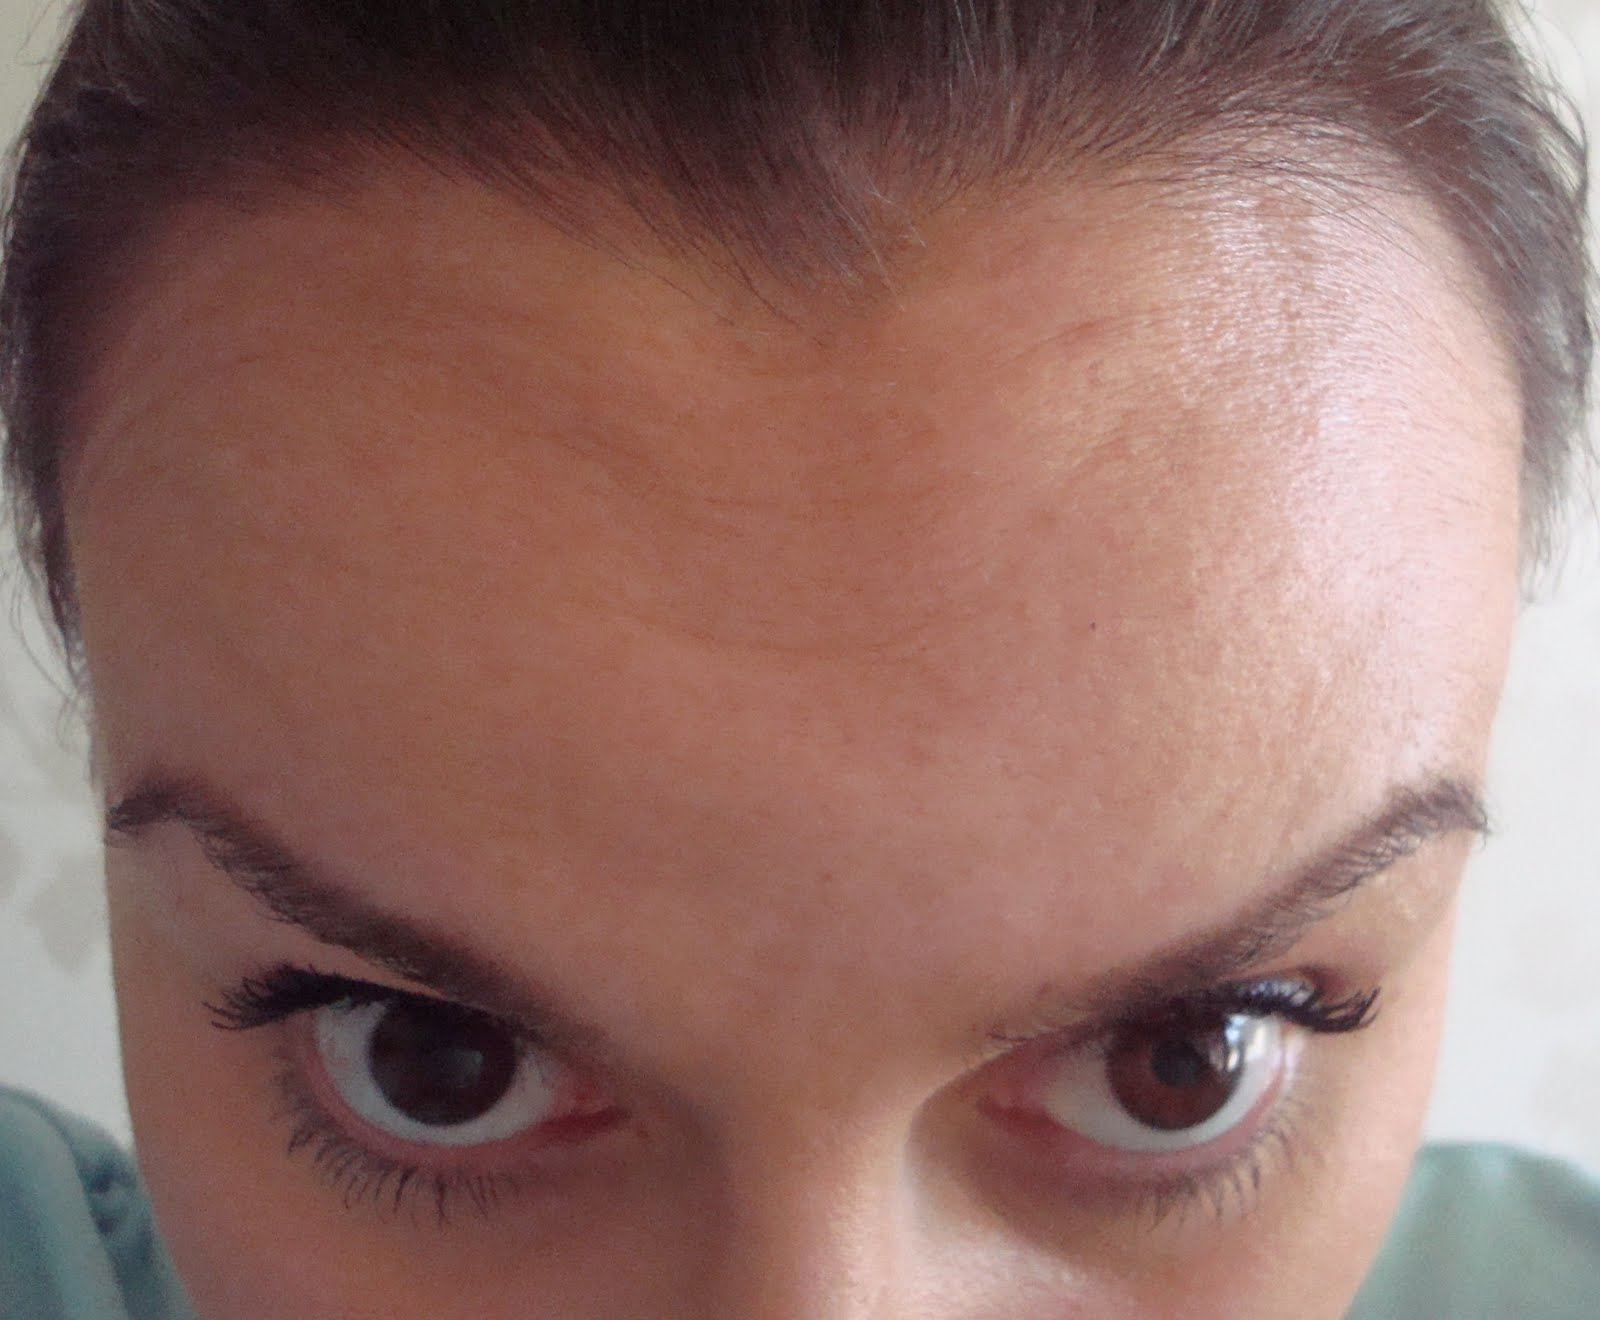 Eyebrow Droop After Botox - Lifestyle Wanita